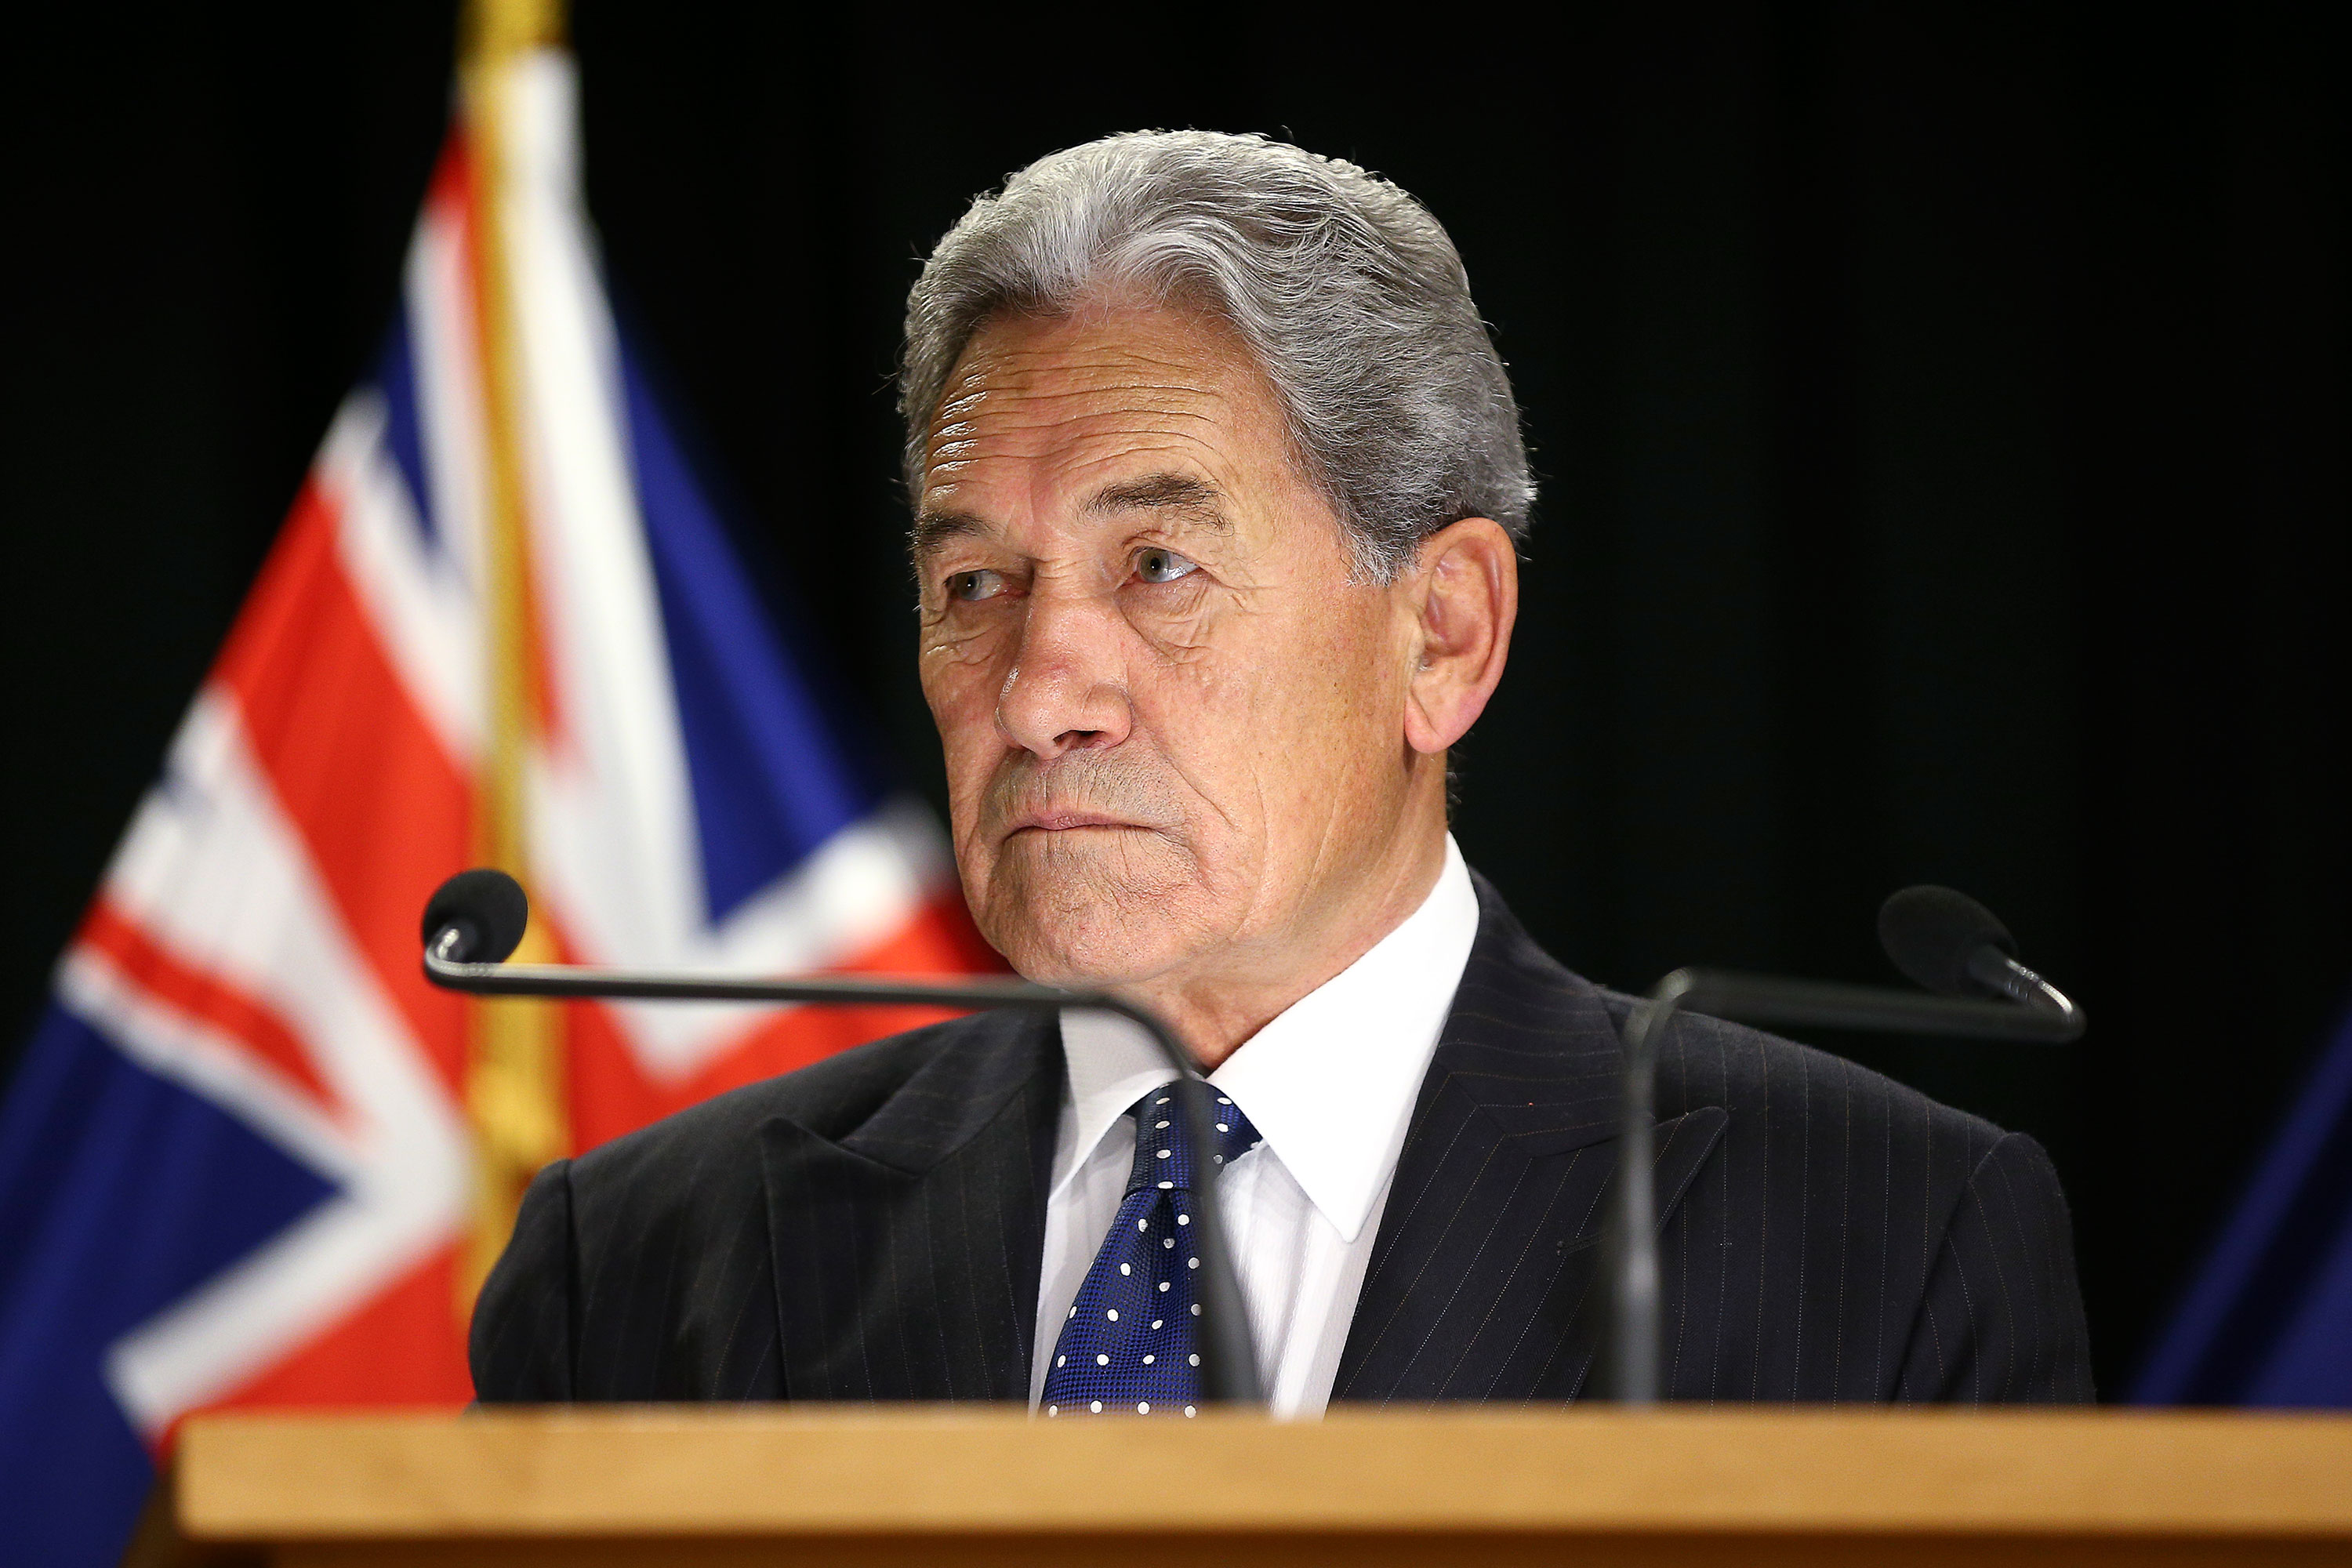 Deputy Prime Minister Winston Peters speaks at a press conference at Parliament on March 17 in Wellington, New Zealand.